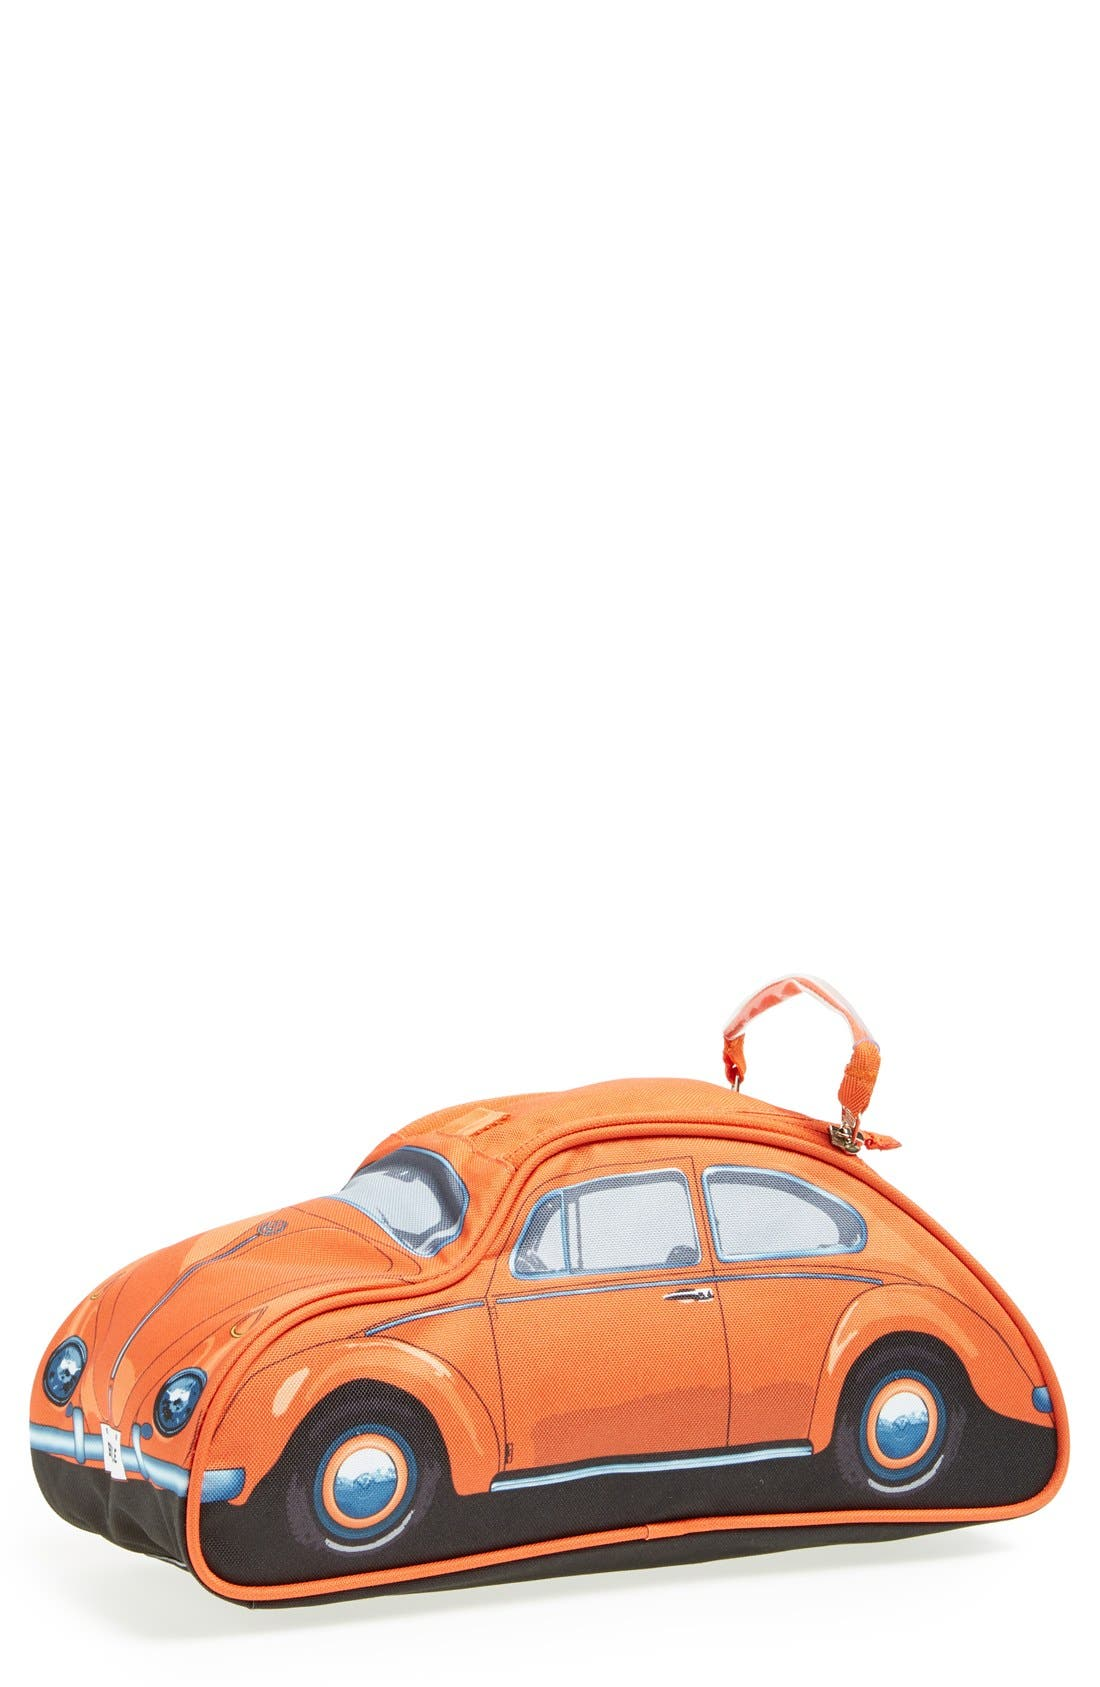 Main Image - The Monster Factory 'VW Beetle' Toiletry Bag